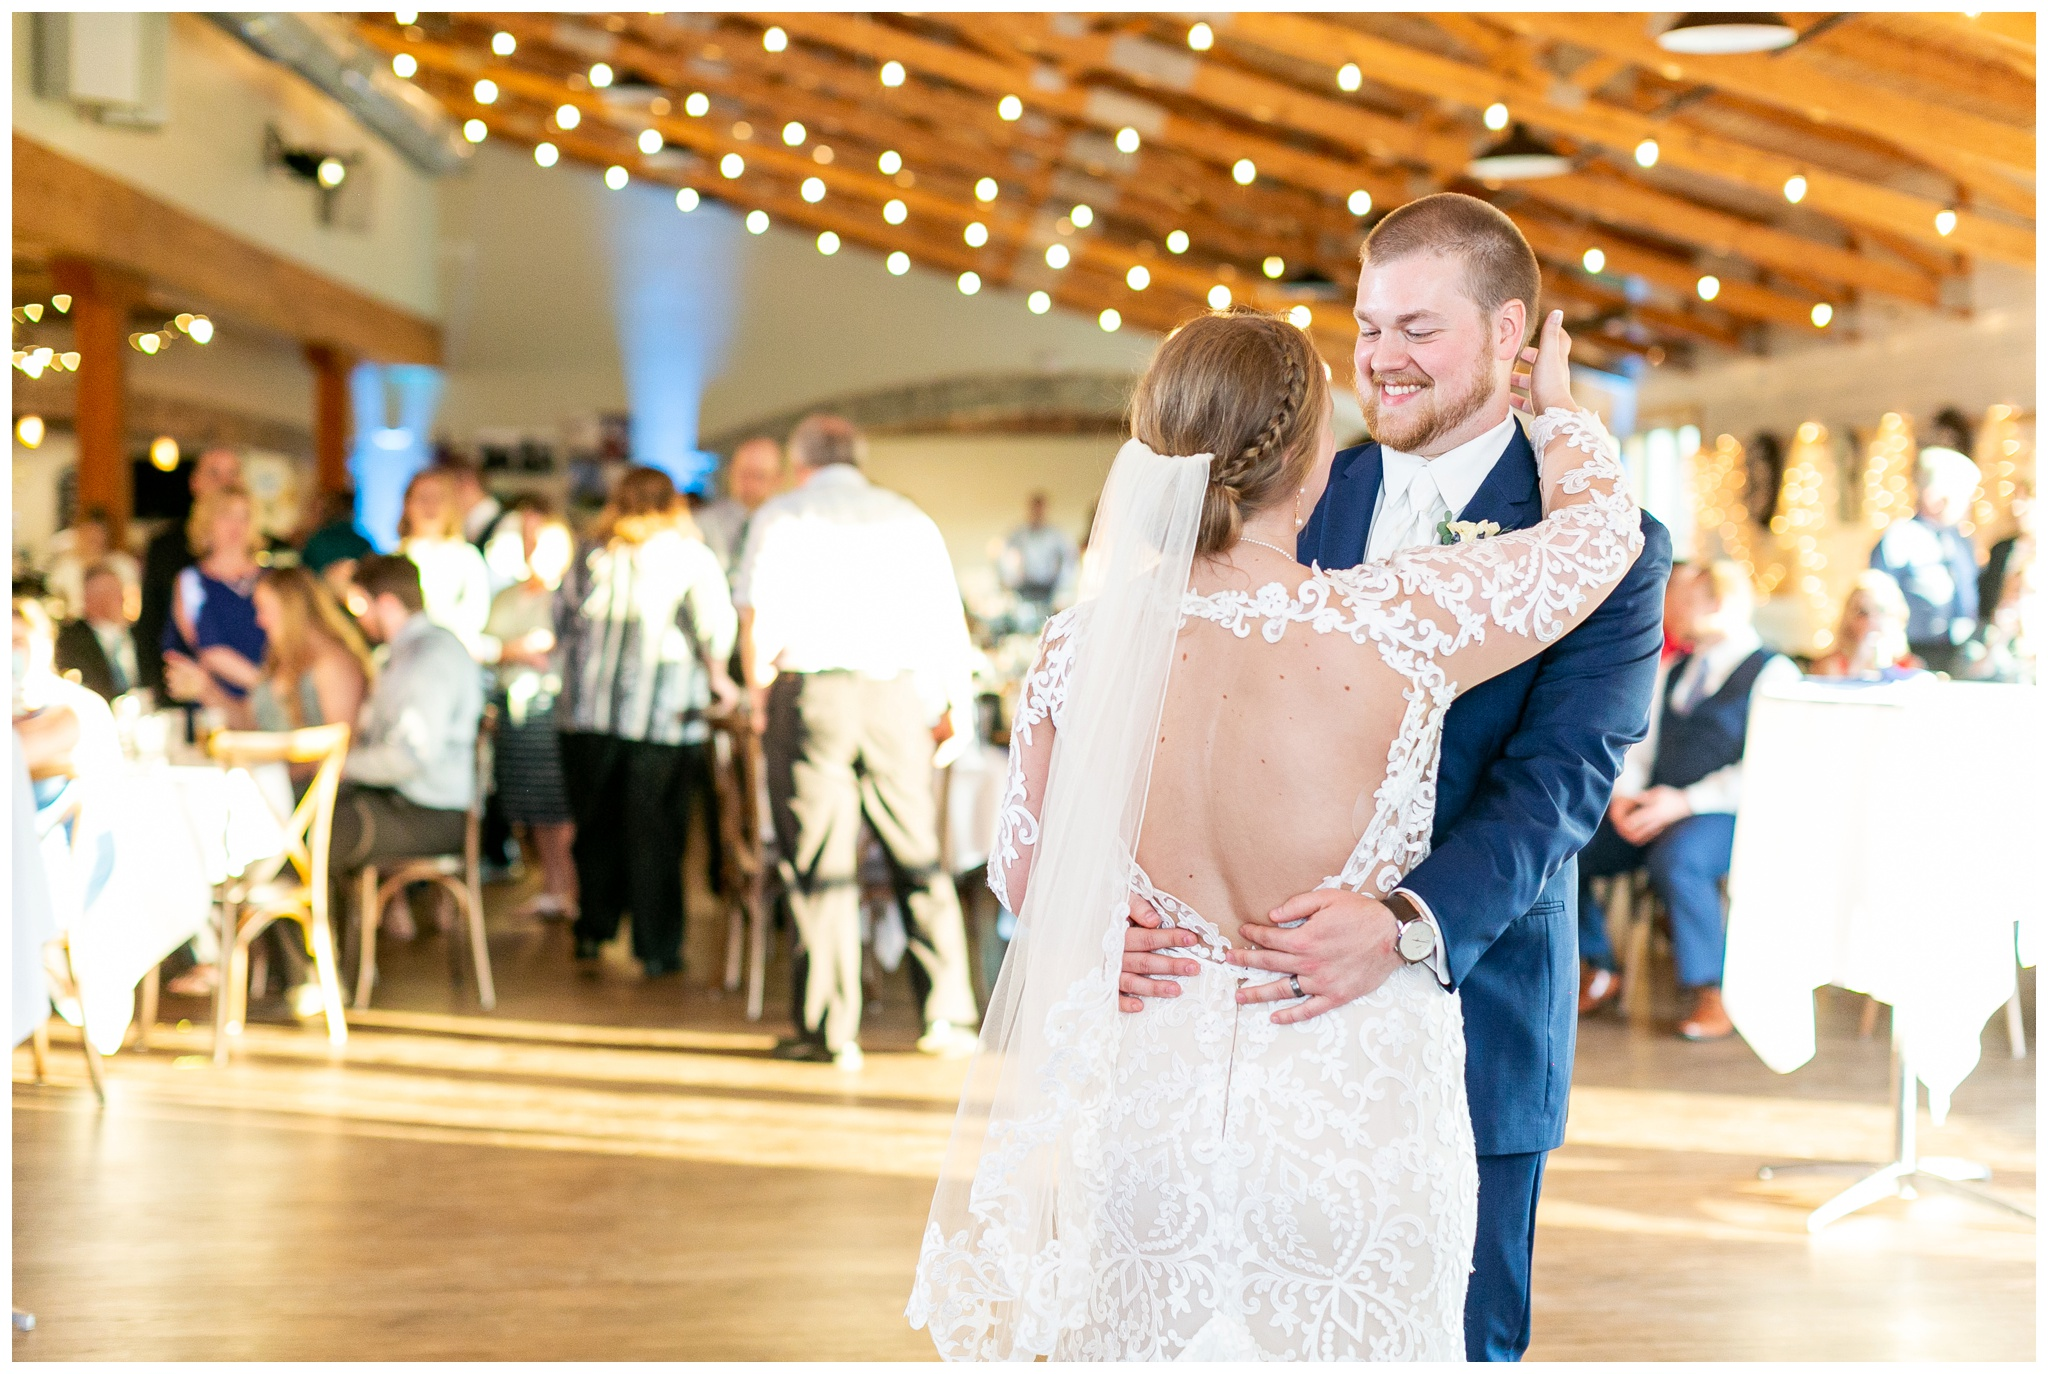 vennebu_hill_baraboo_wisconsin_wedding_madison_wisconsin_wedding_photographers_3067.jpg